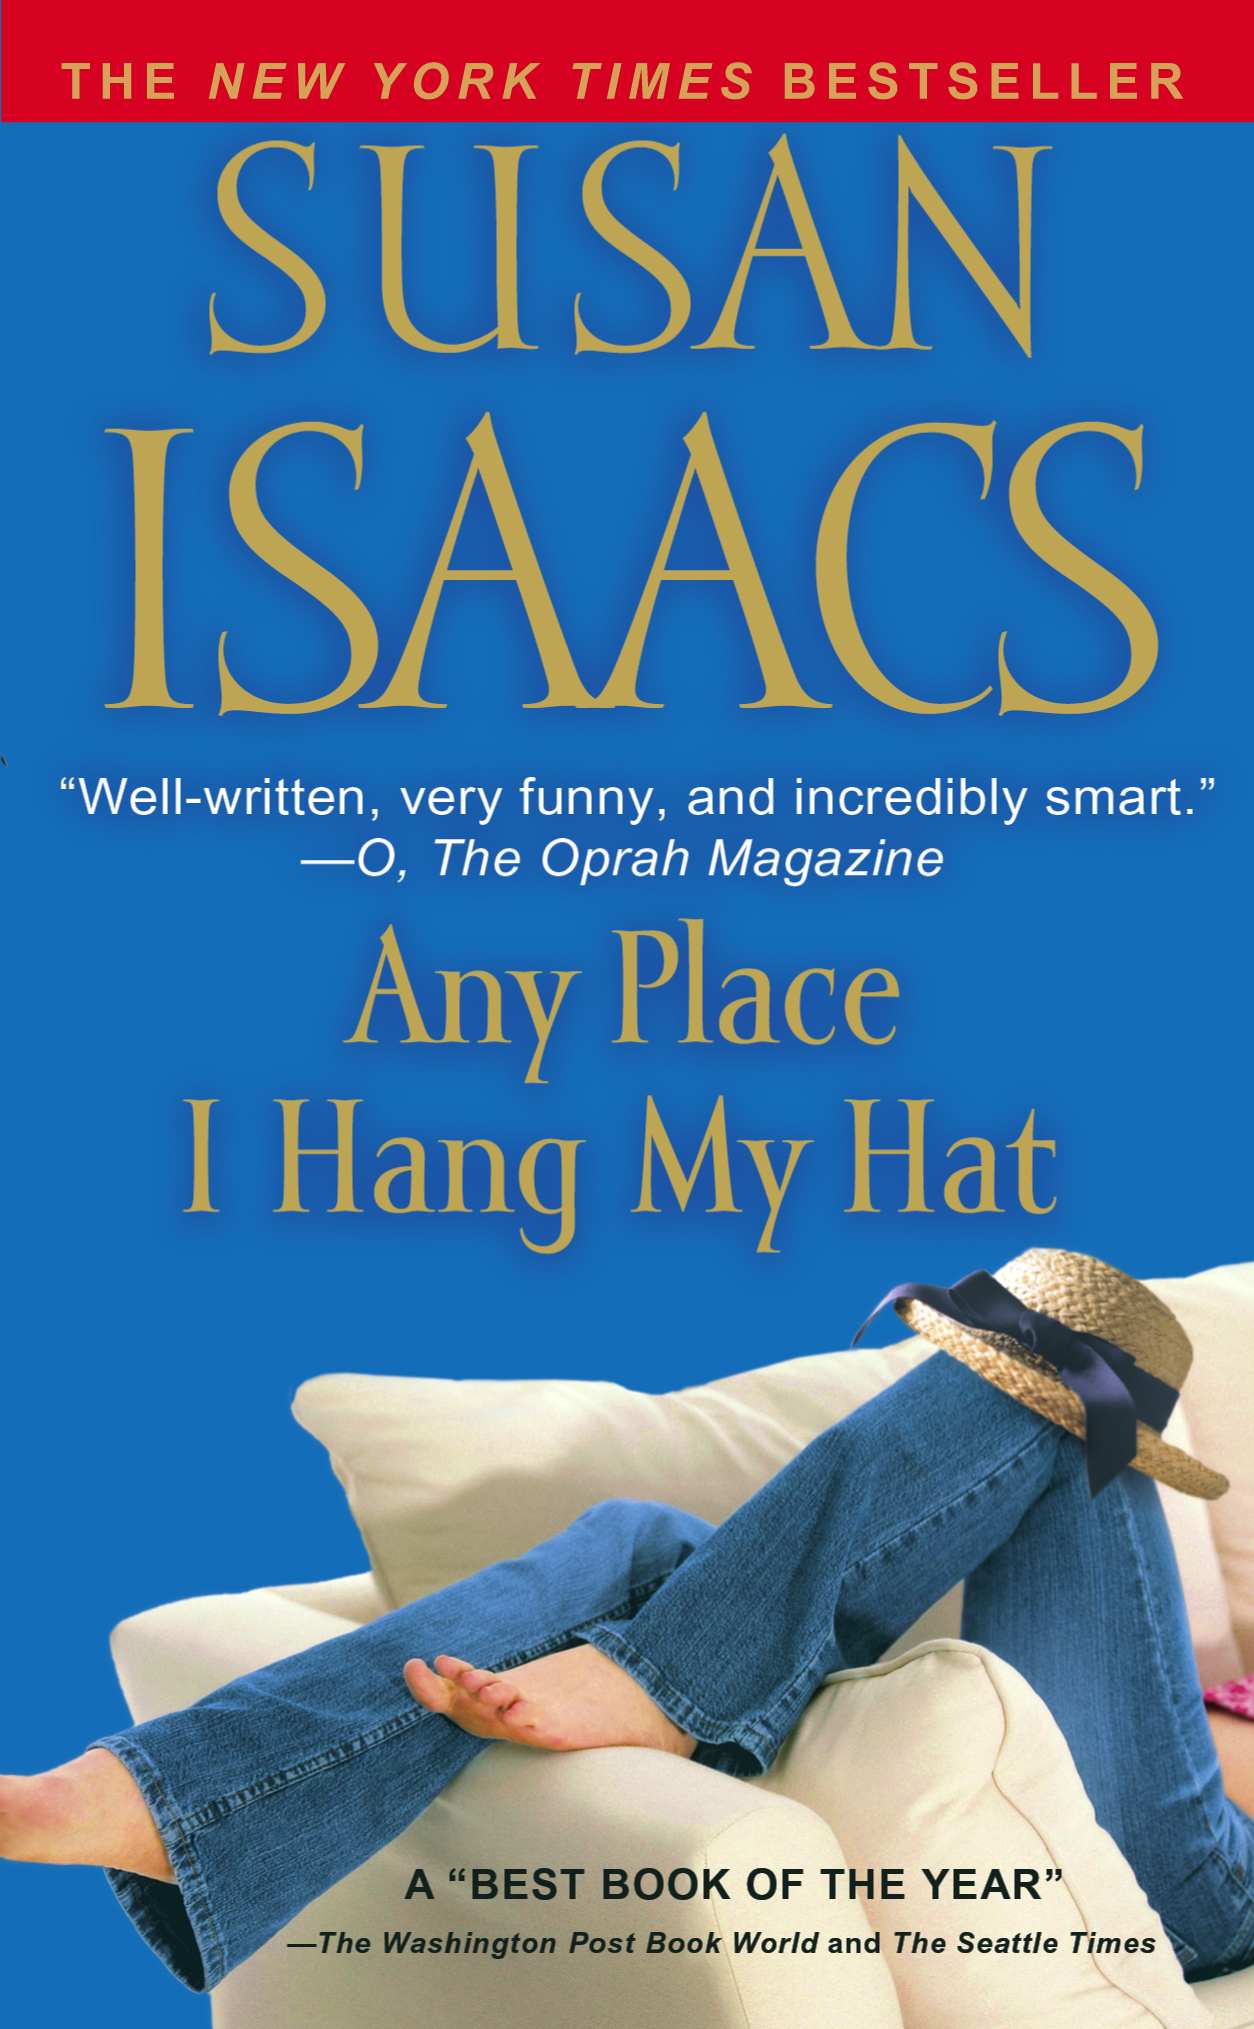 Any Place I Hang My Hat By: Susan Isaacs